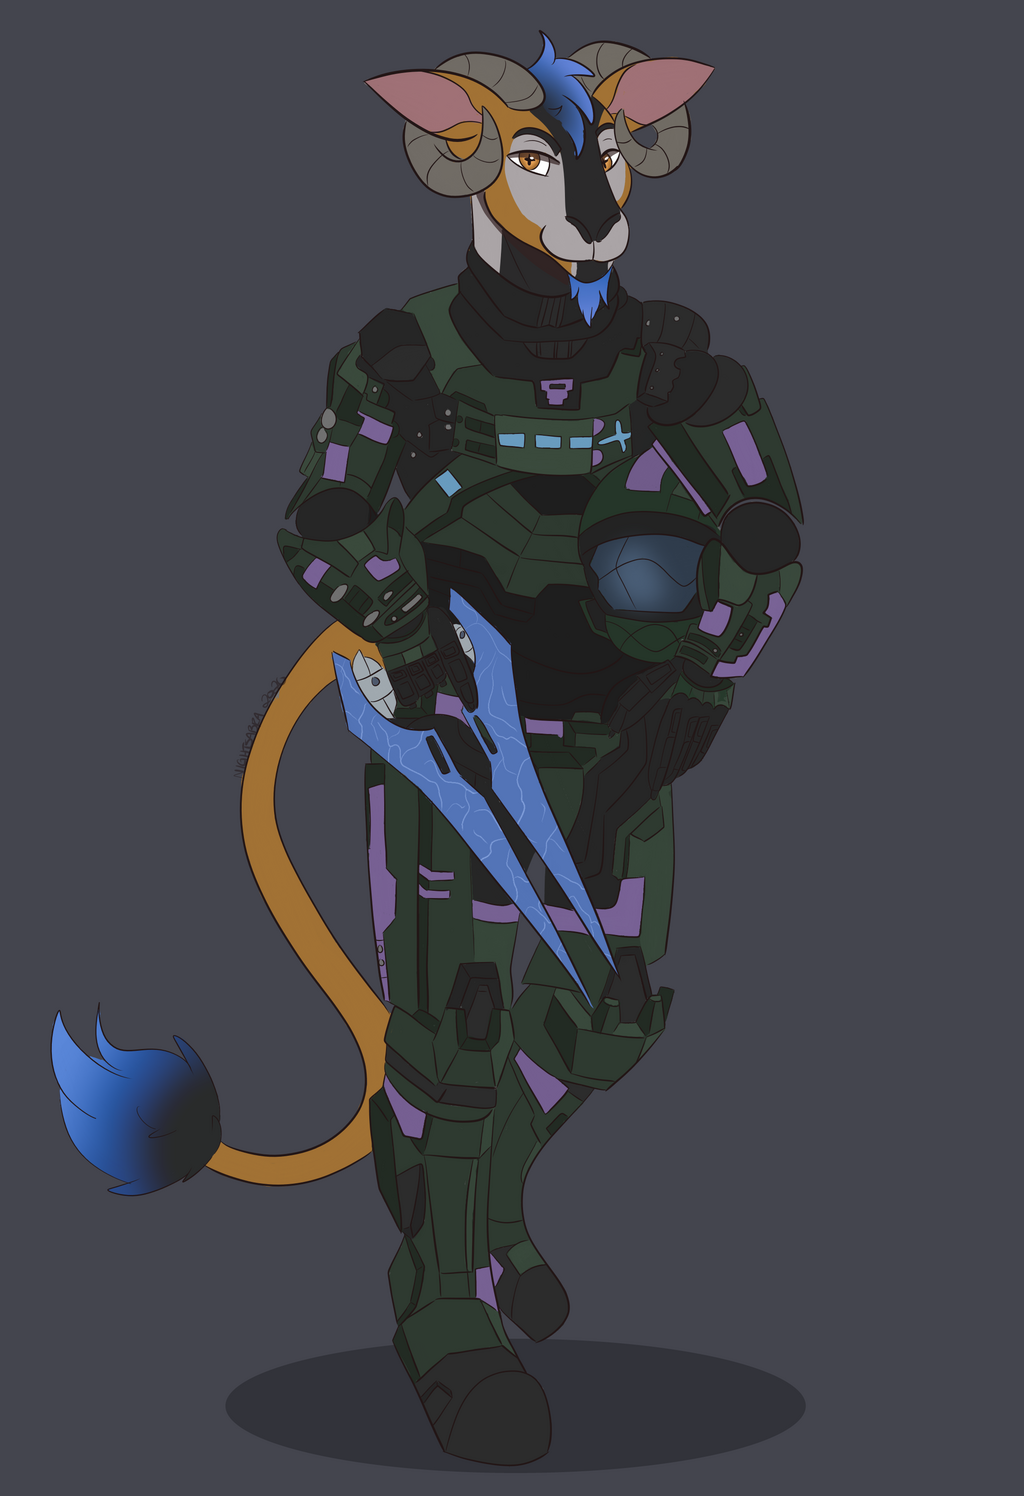 [C]Ready, Soldier?